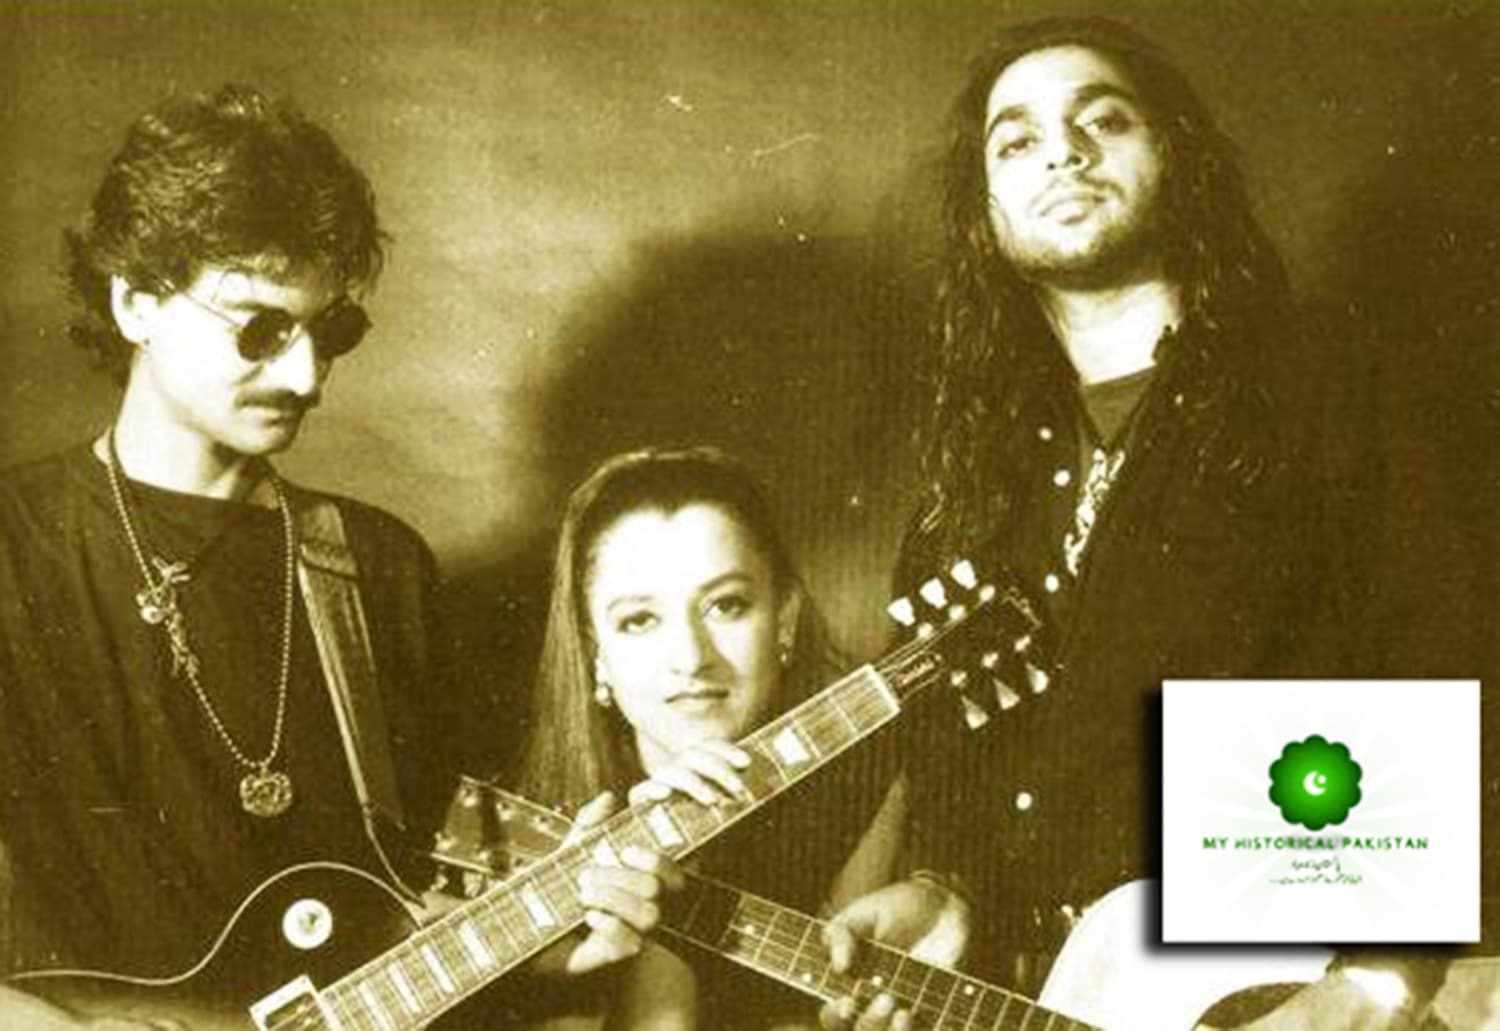 Karachi-based pop/rock band, Milestones. Formed in 1990, it went on to become part of a fresh wave of Pakistani pop music which swept the country in the 1990s.